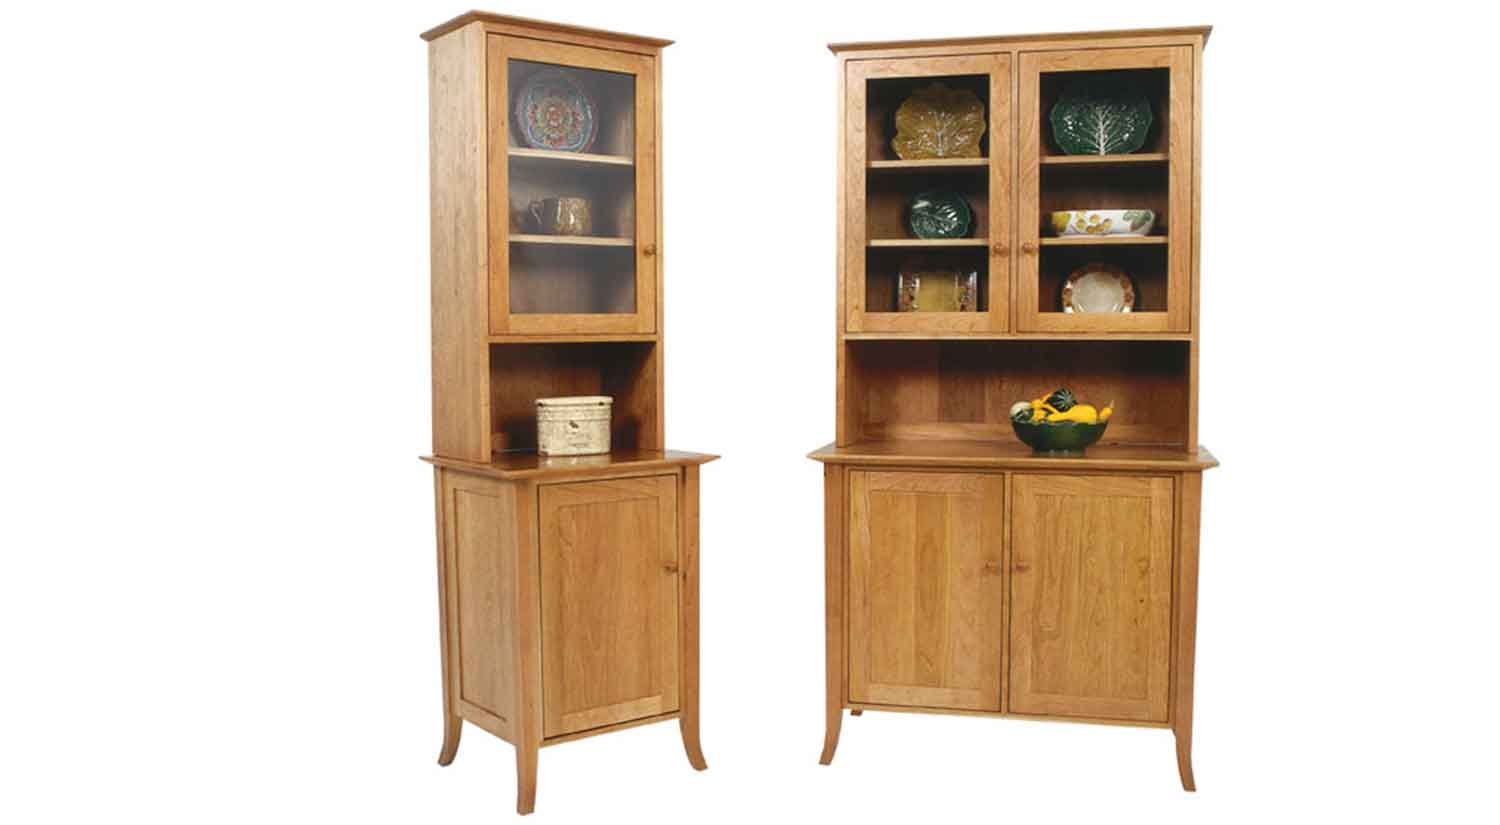 Circle furniture small flare leg buffet and hutch for Dining cabinet furniture